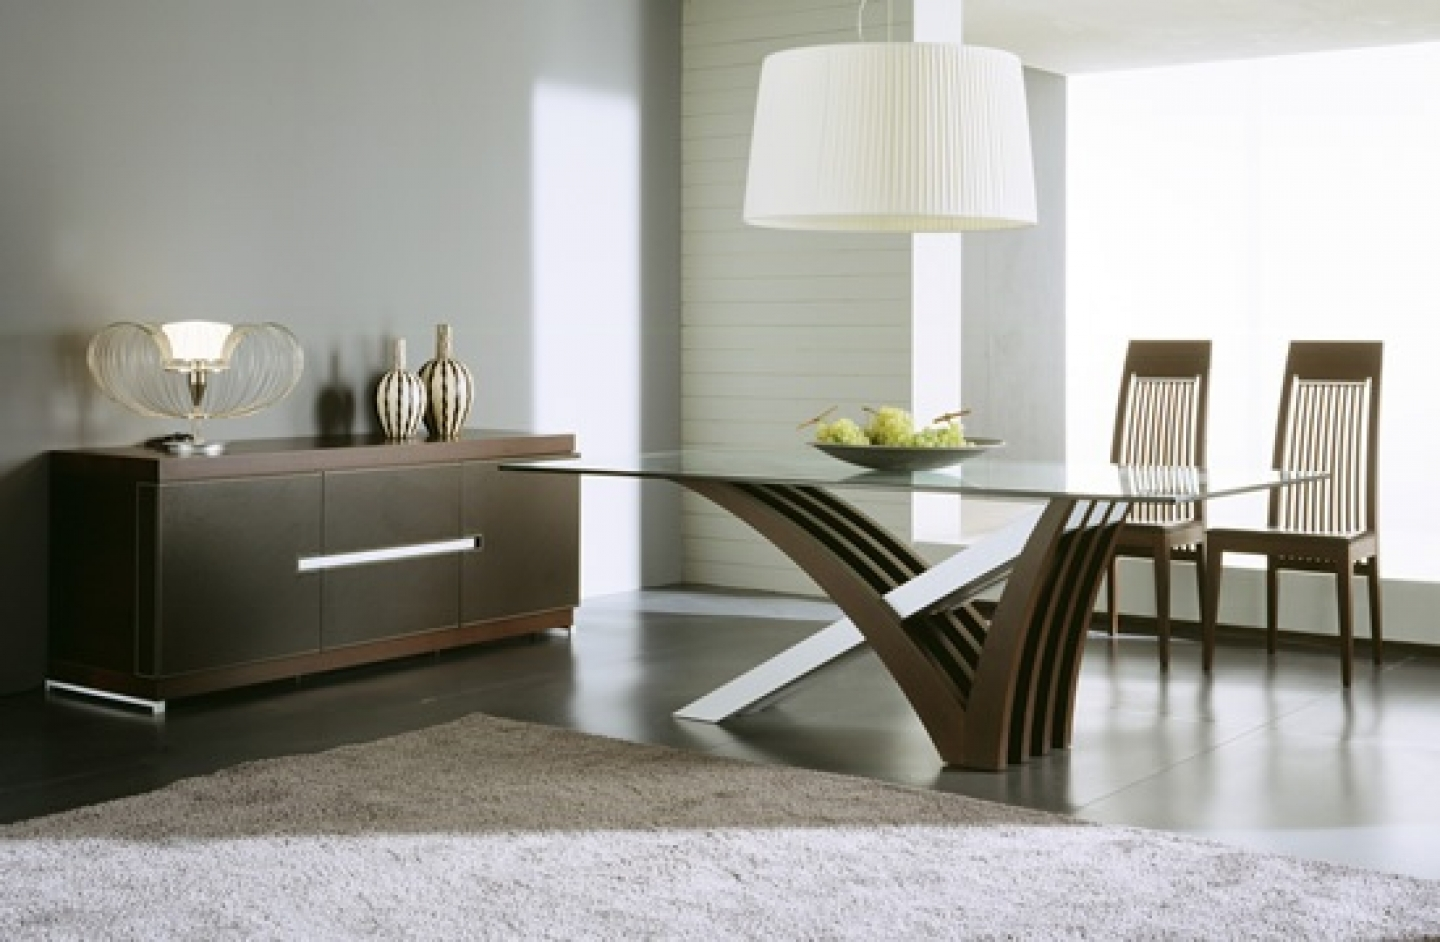 Teak patio furniture at home decor dream house for Modern dining room table decorating ideas